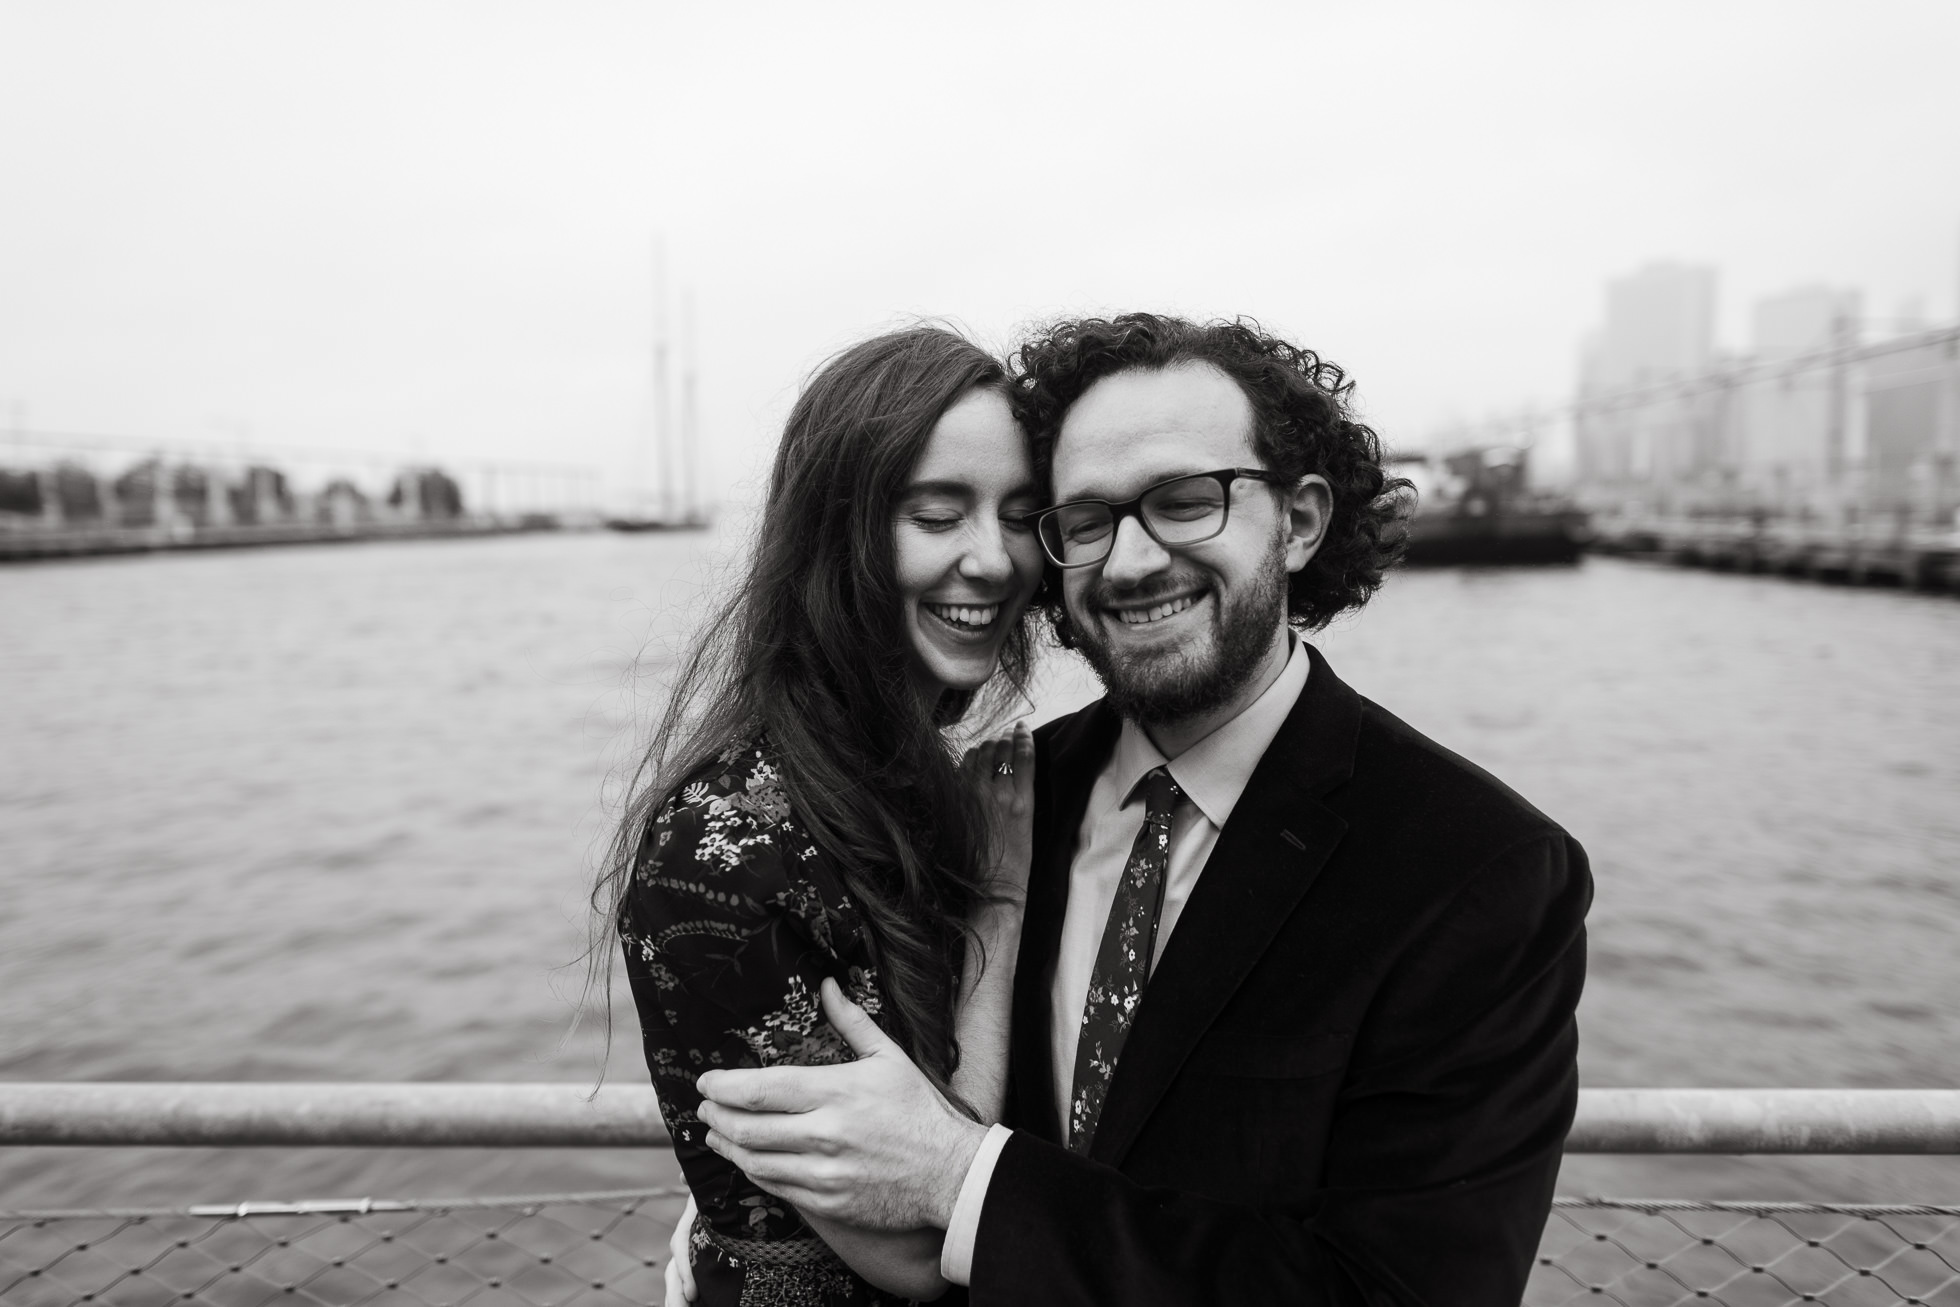 Brooklyn Bridge wedding photos